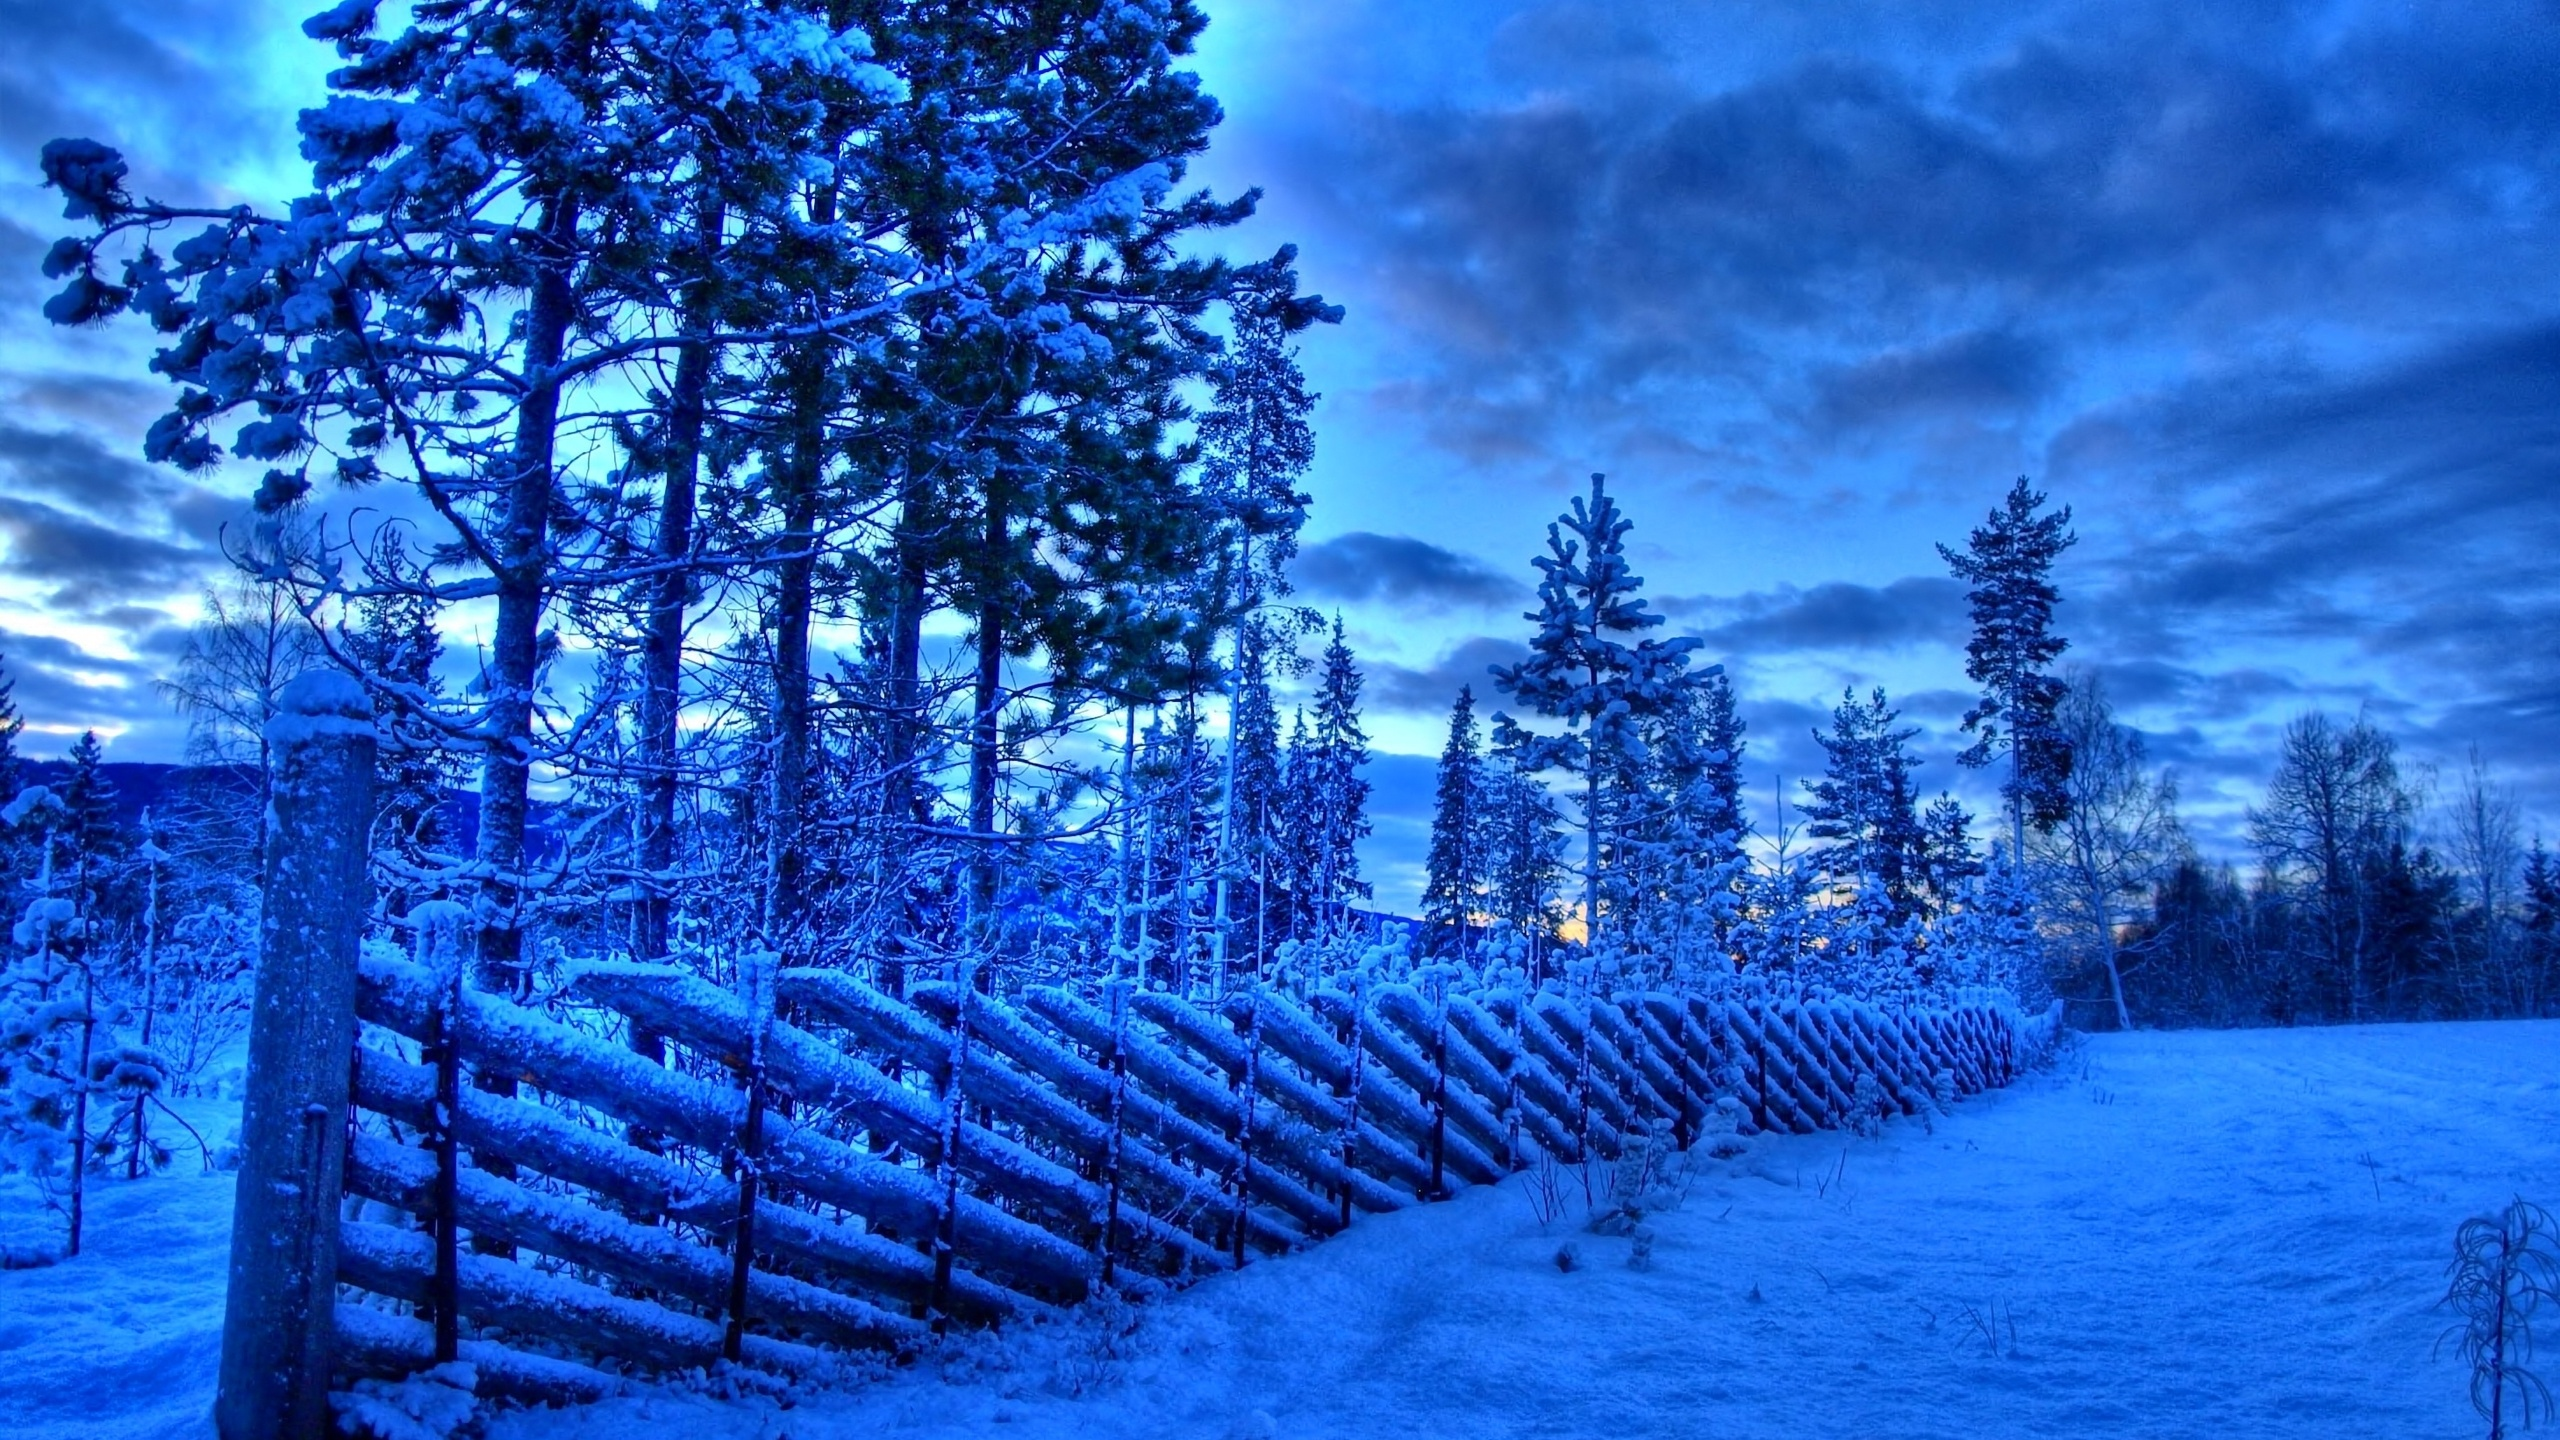 2560x1440 Frozen fence, snow, winter, tree, sky, cloud, nature